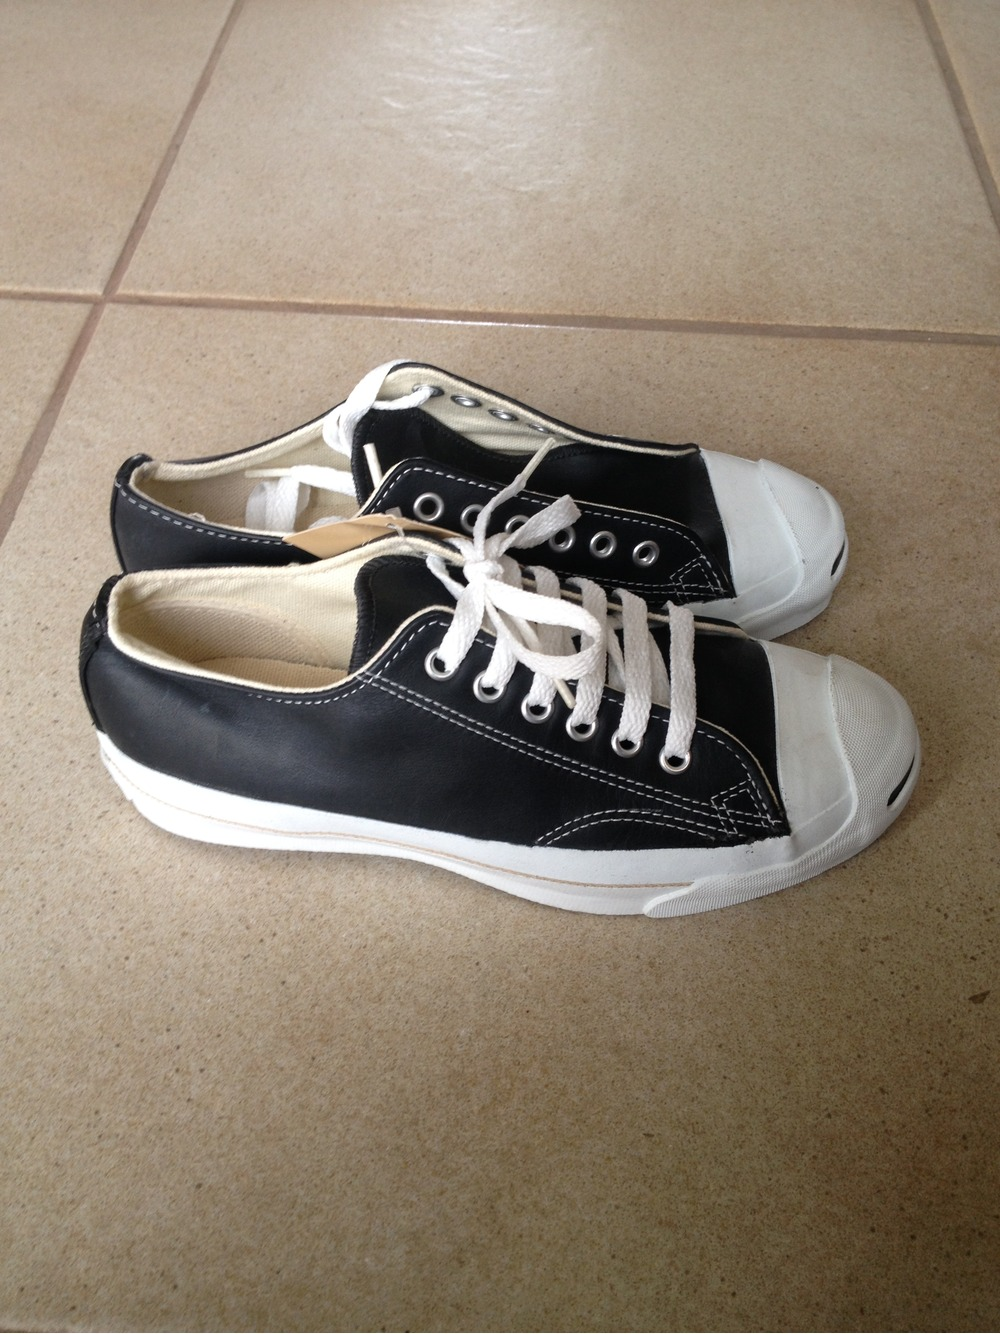 converse jack purcell usa